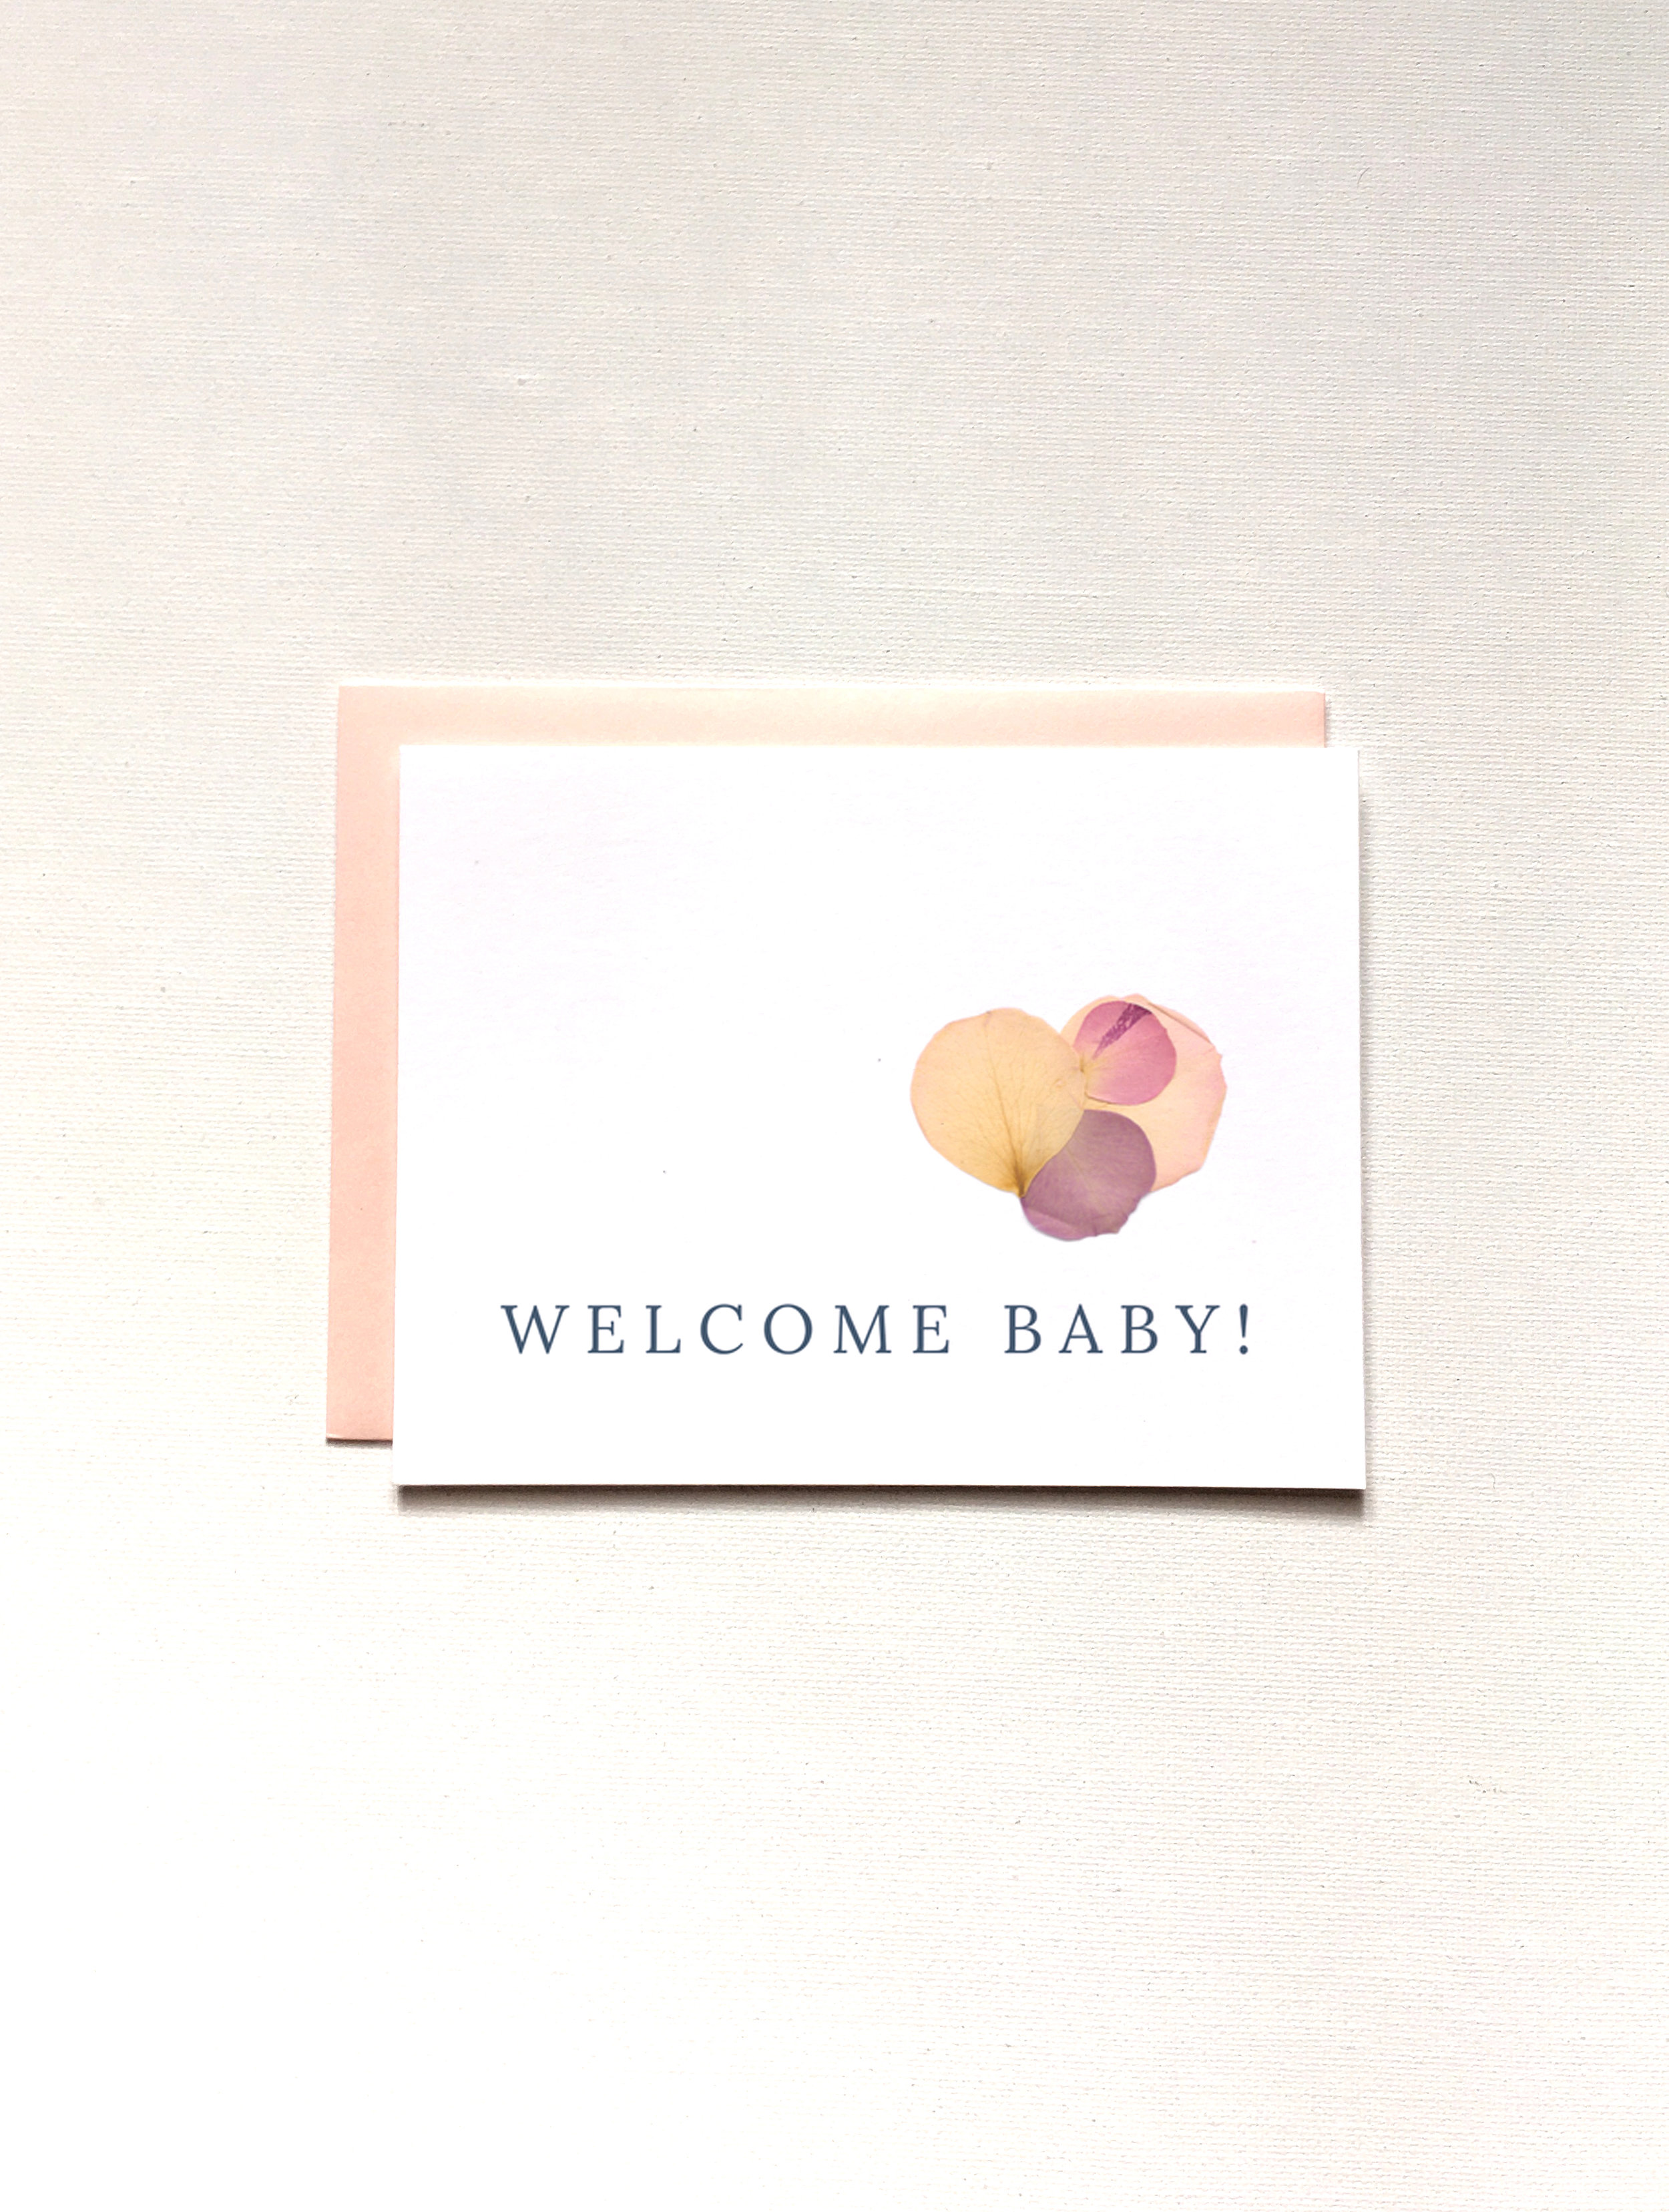 Welcome Baby, Baby Shower Card by Raleigh Calligraphy